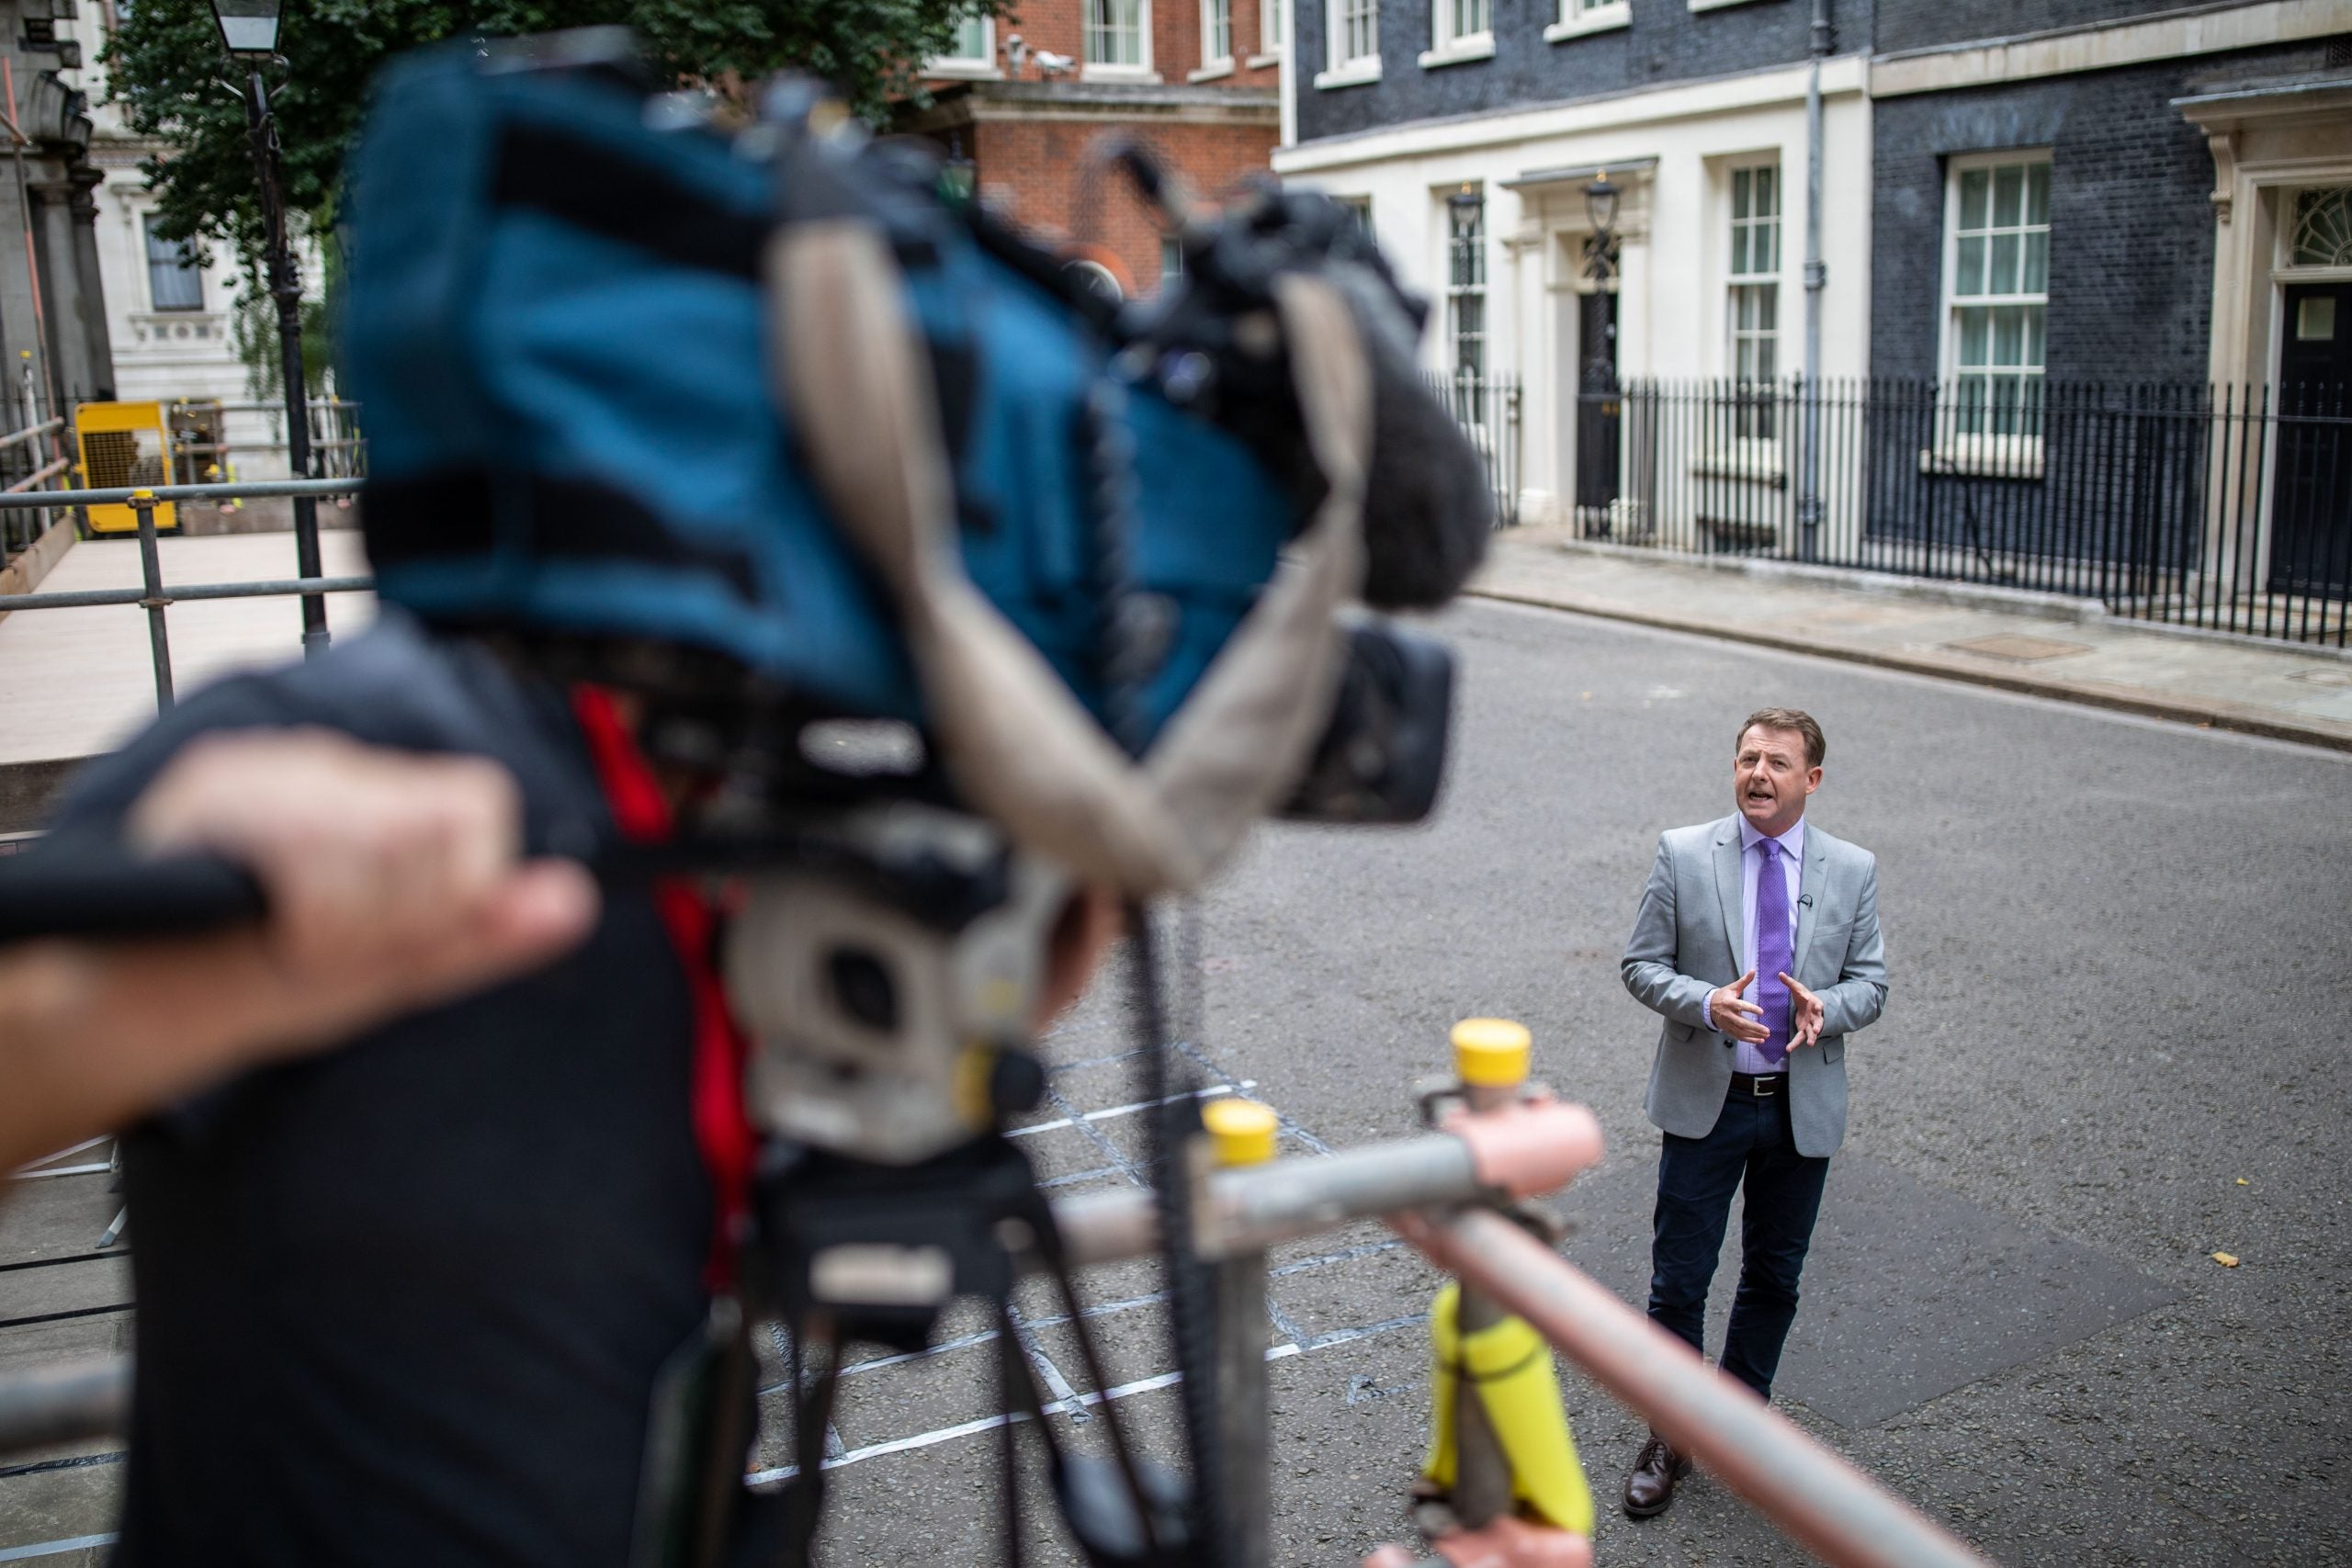 Broadcasters must take radical steps to challenge campaign spin and enhance understanding